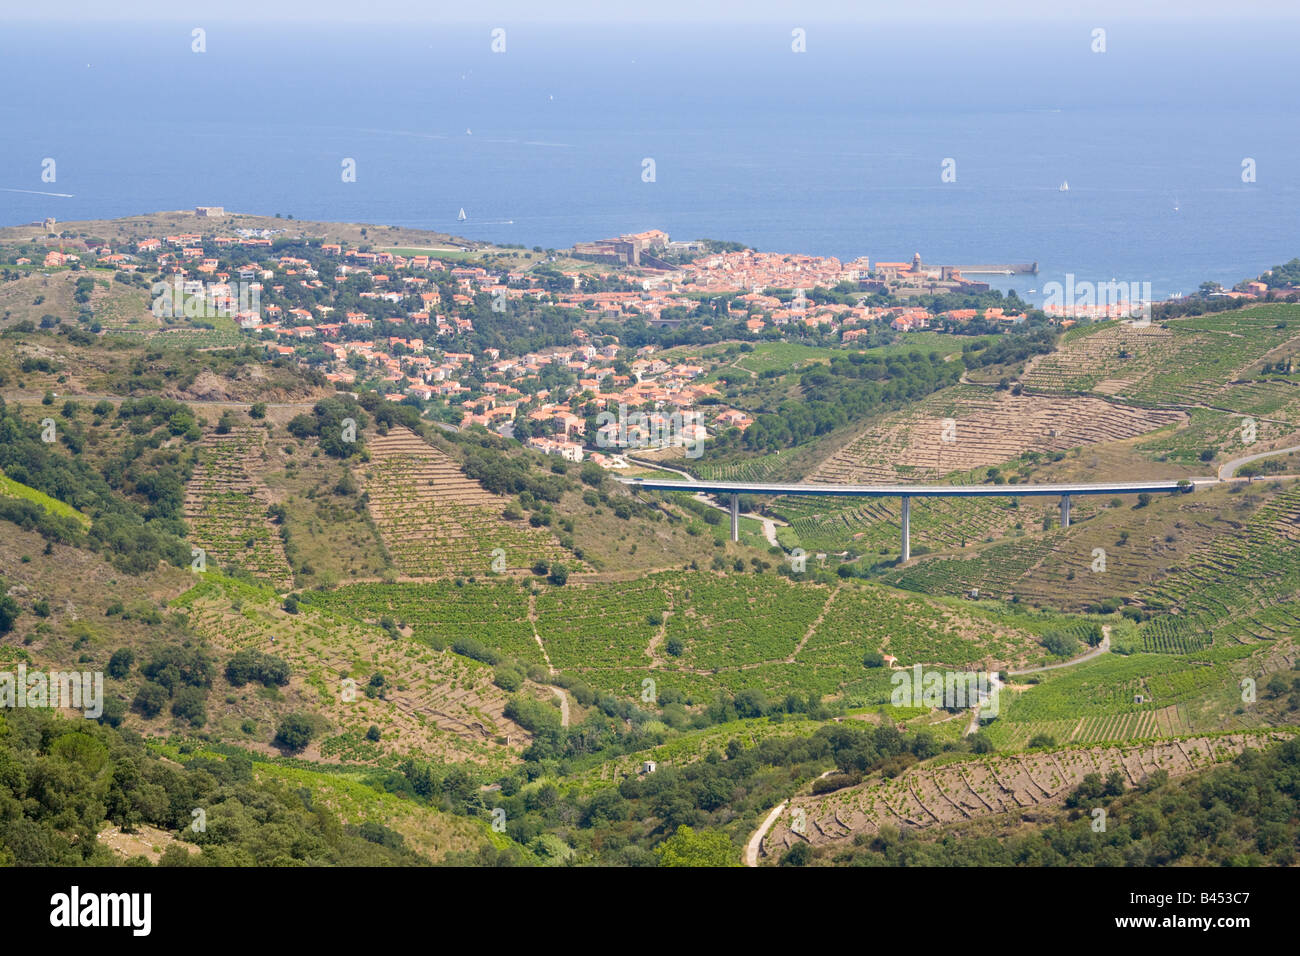 Collioure and its vineyards in the back country of the mediterranean Cote Vermeille, origin of the wine of Banyuls - Stock Image